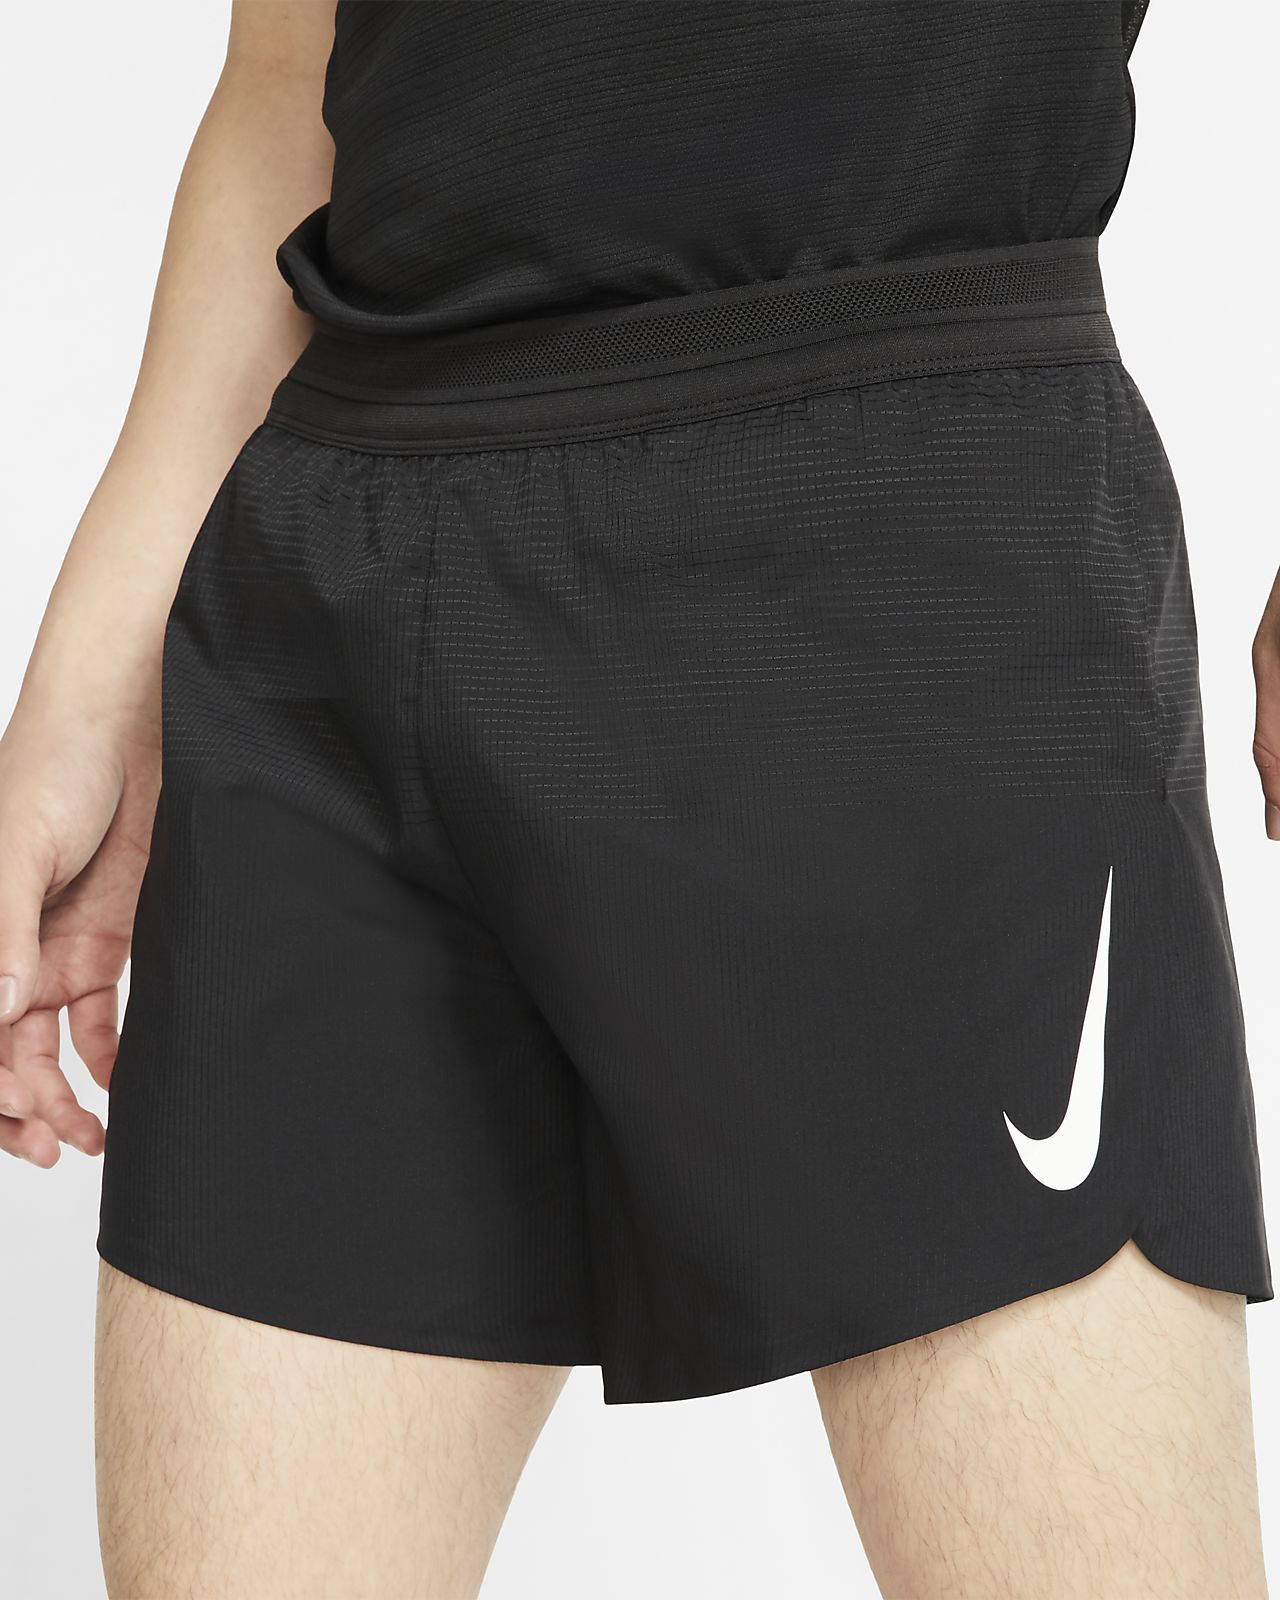 Nike AeroSwift (London) Men's 13cm (approx.) Running Shorts